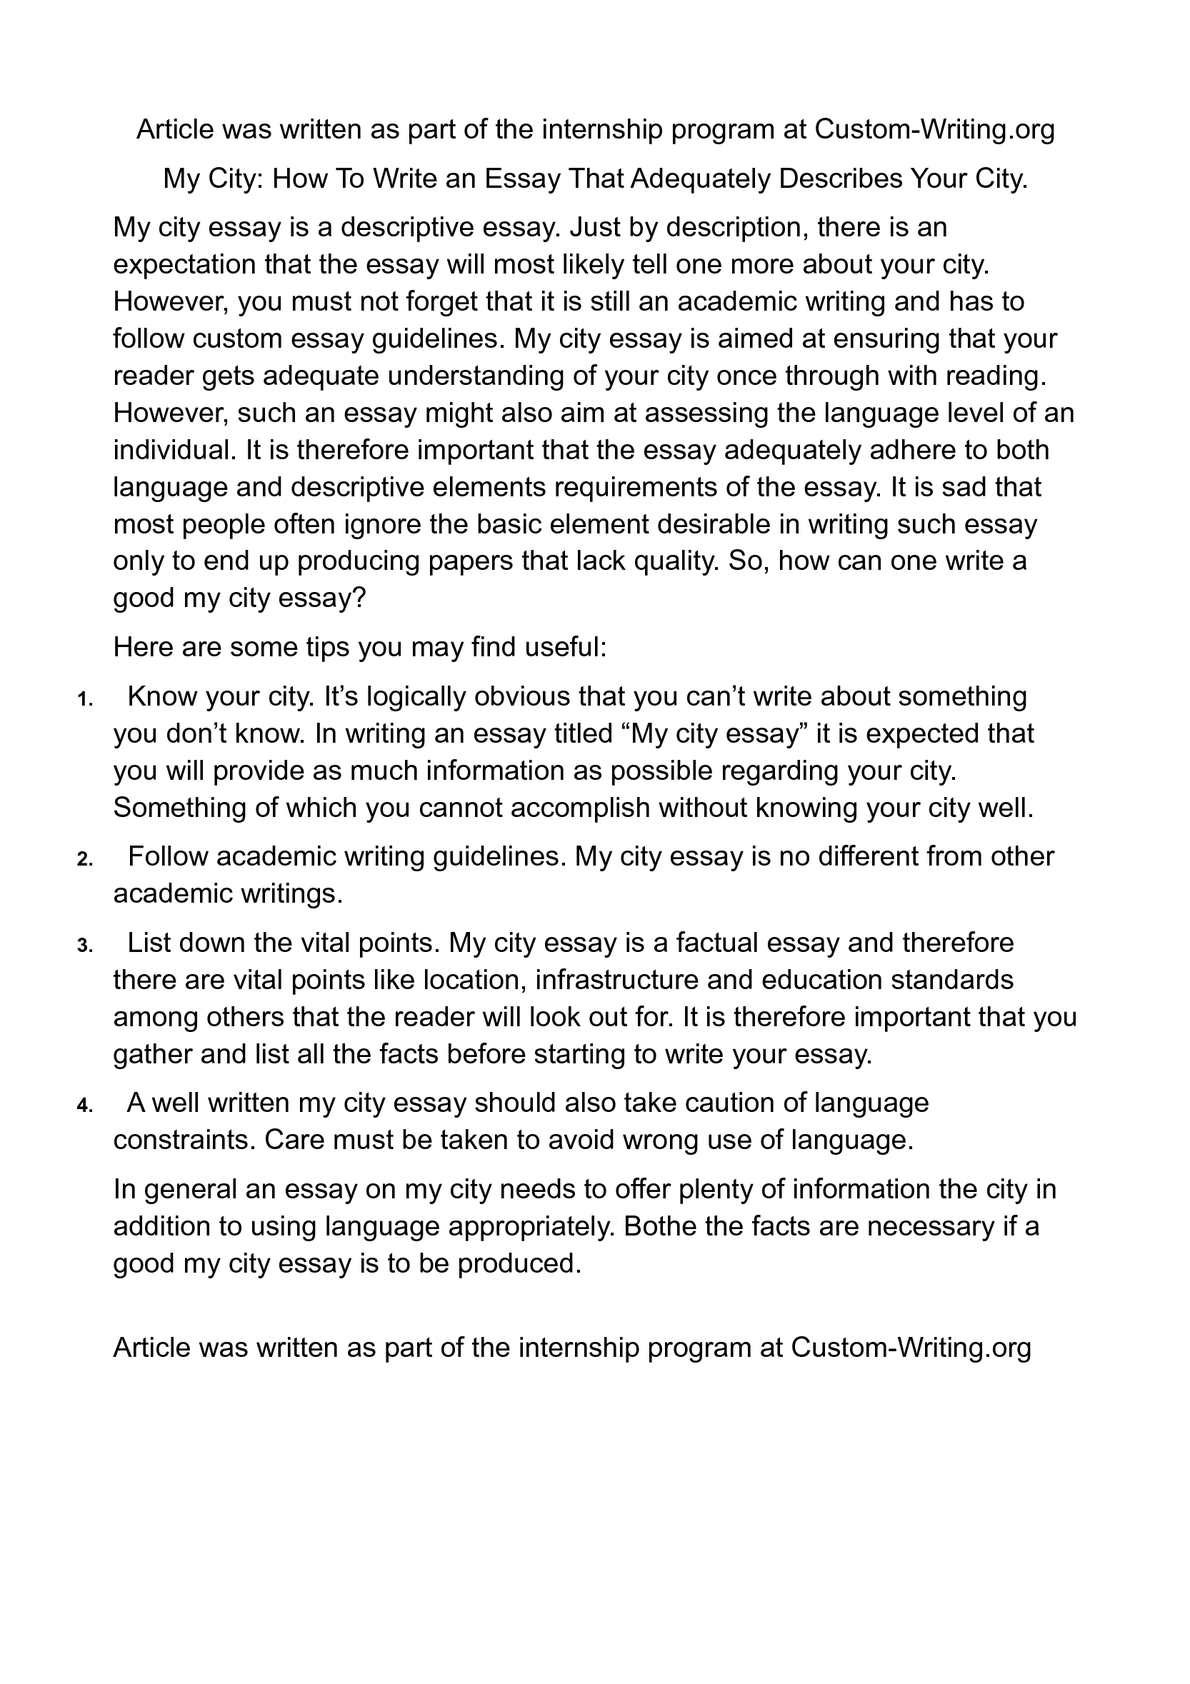 descriptive composition essay essay descriptive composition essay  calam eacute o my city how to write an essay that adequately describes calameacuteo my city of descriptive essay